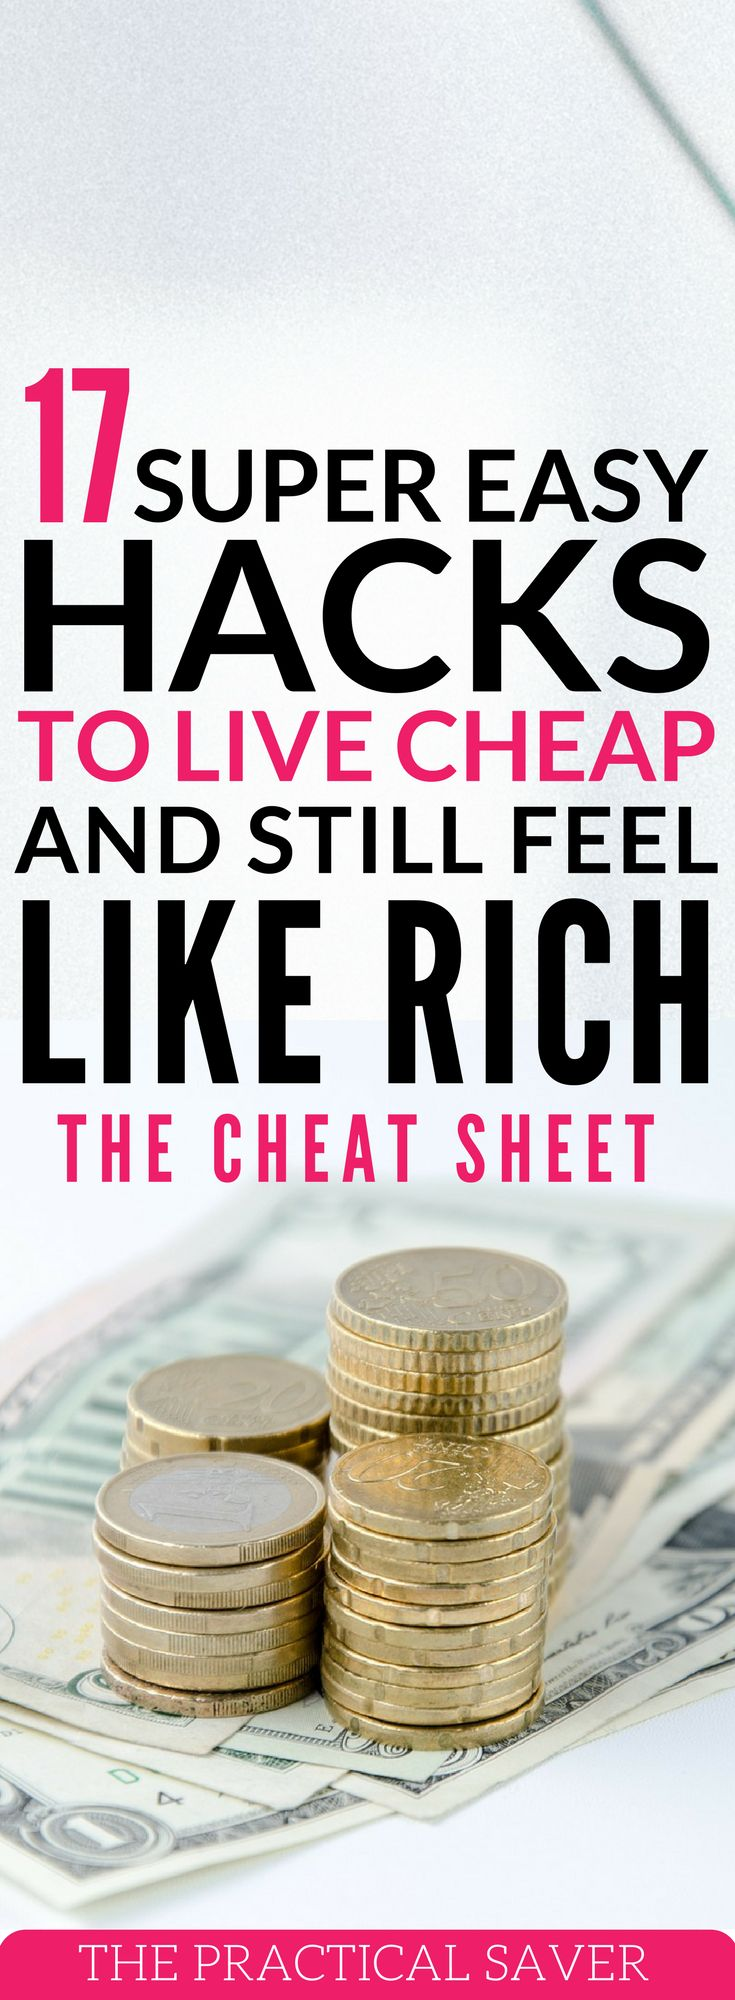 Small hacks can make a big difference in your life. Find out these money saving hacks to help you live cheap but feel rich. money tips l frugal living tips l save extra money l extra cash money hacks l how to save money l free money l pay off debts l debt consolidation l save money for retirement l debt strategies. #moneysavingtips #howtosavemoney #makeextramoney #financialplanning #frugalliving